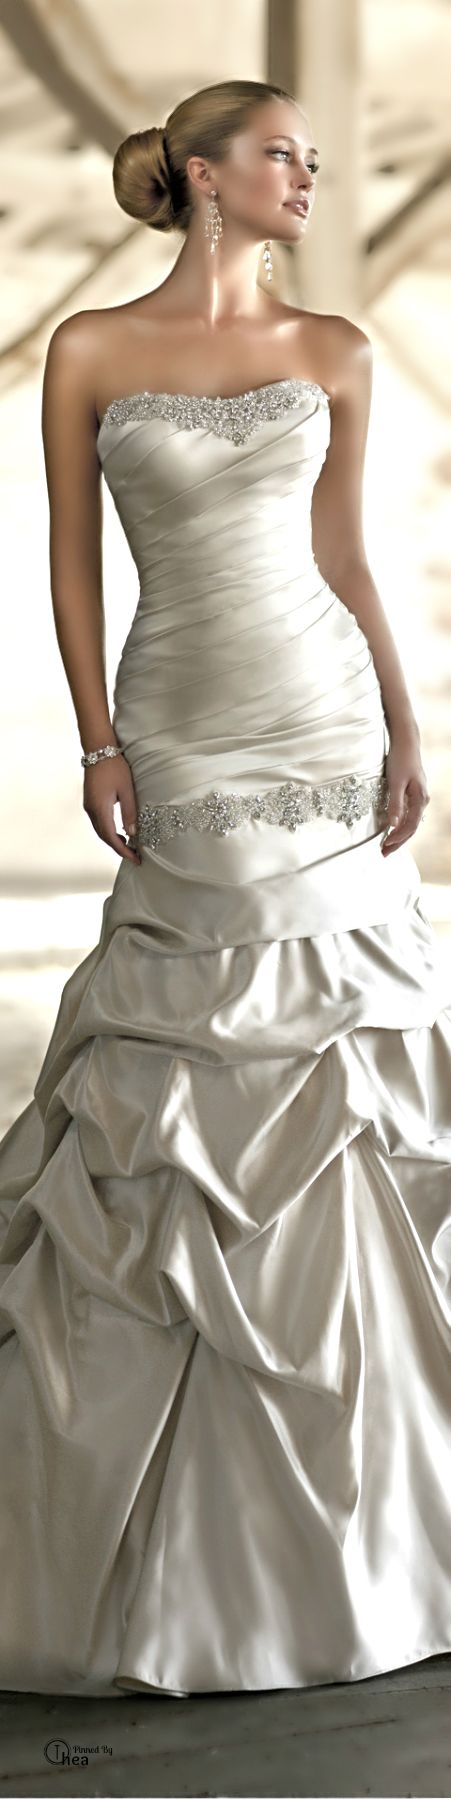 Alfred angelo dream maker wedding dress   best Multicolor Gowns images on Pinterest  Wedding dressses